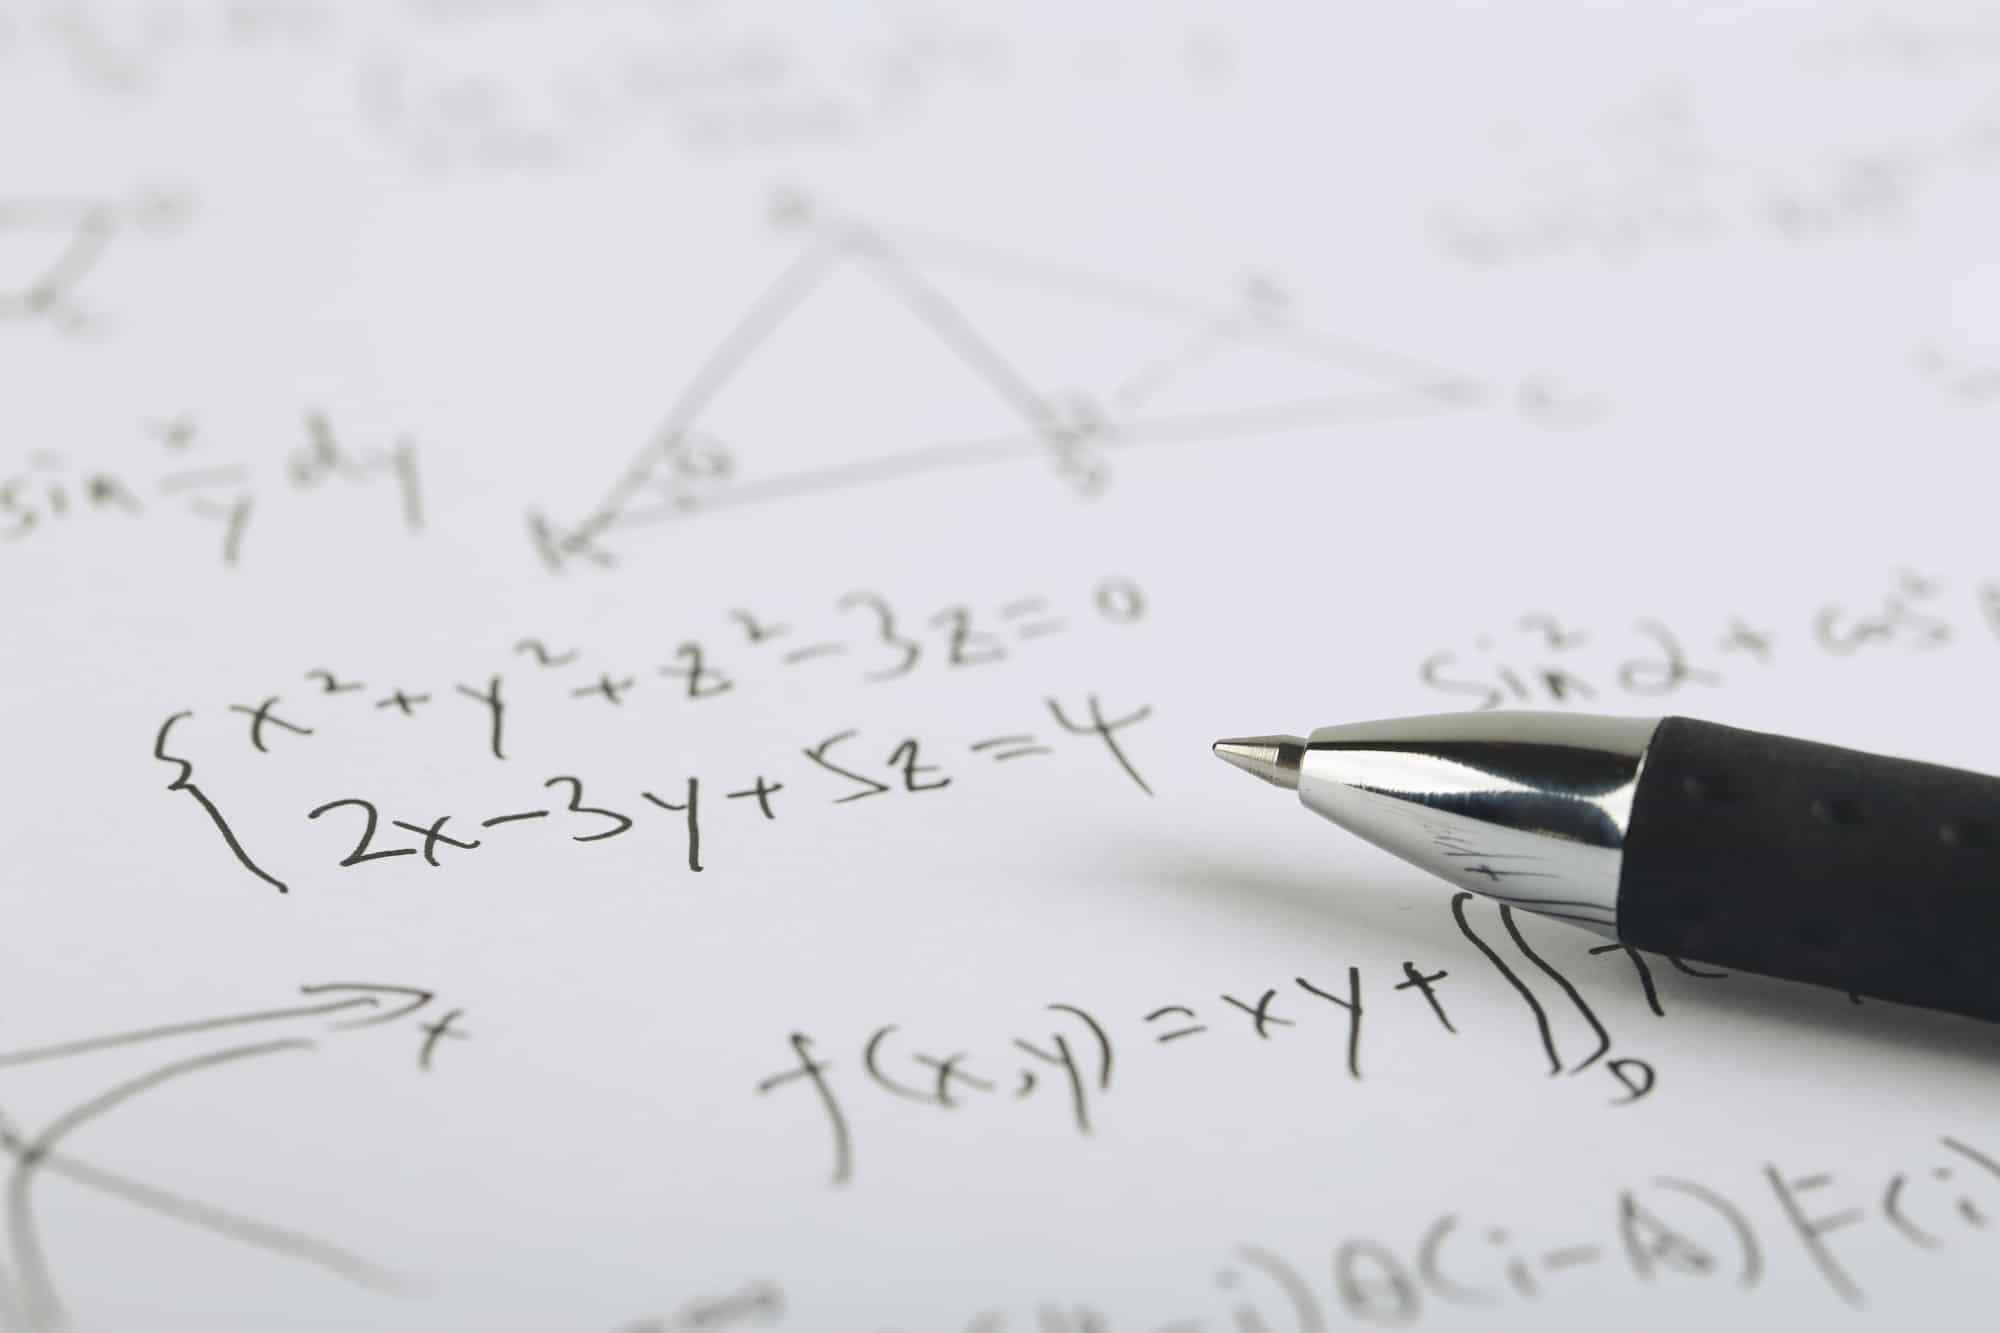 Calculating net income using complex math formulas on paper with a black ceramic ball pen.